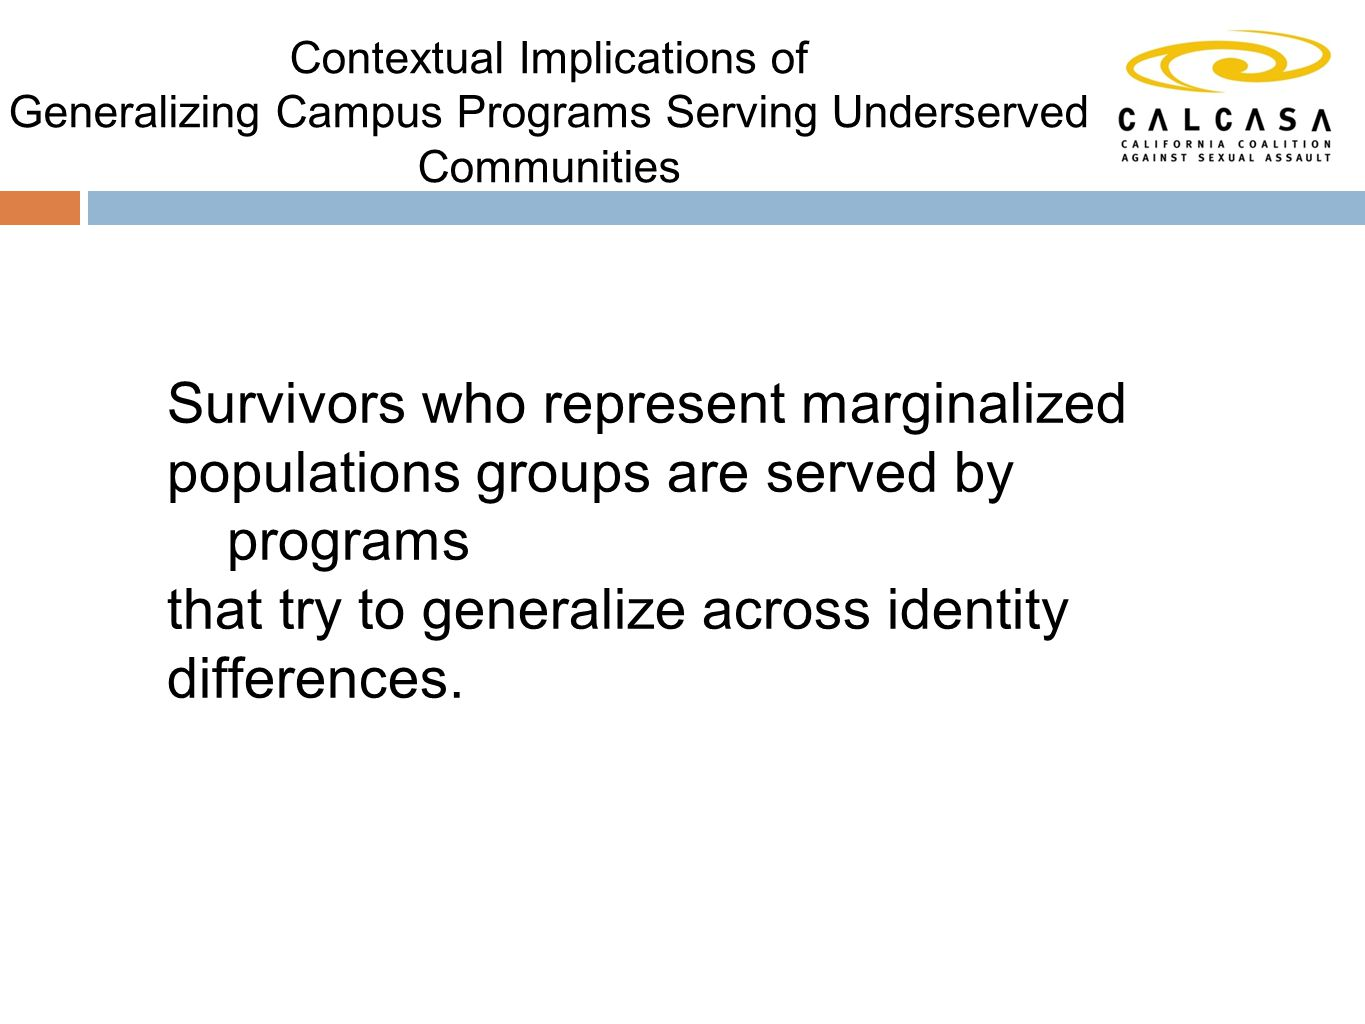 Contextual Implications of Generalizing Campus Programs Serving Underserved Communities Survivors who represent marginalized populations groups are served by programs that try to generalize across identity differences.